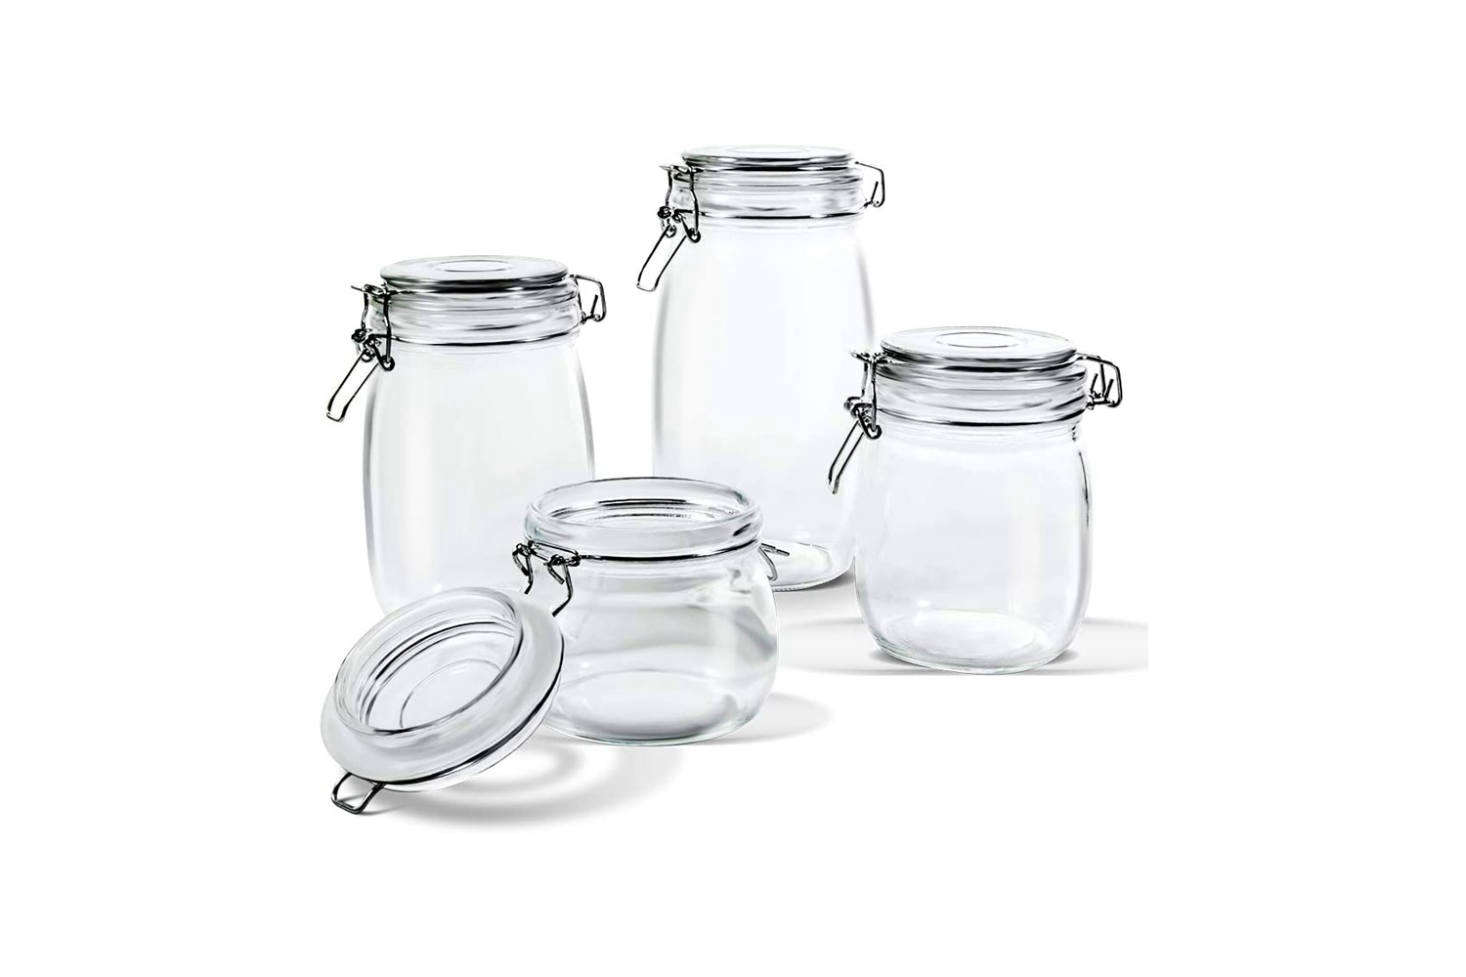 Available on Amazon, the Mast Home Glass Storage Jars are $.99 for a set of 4.